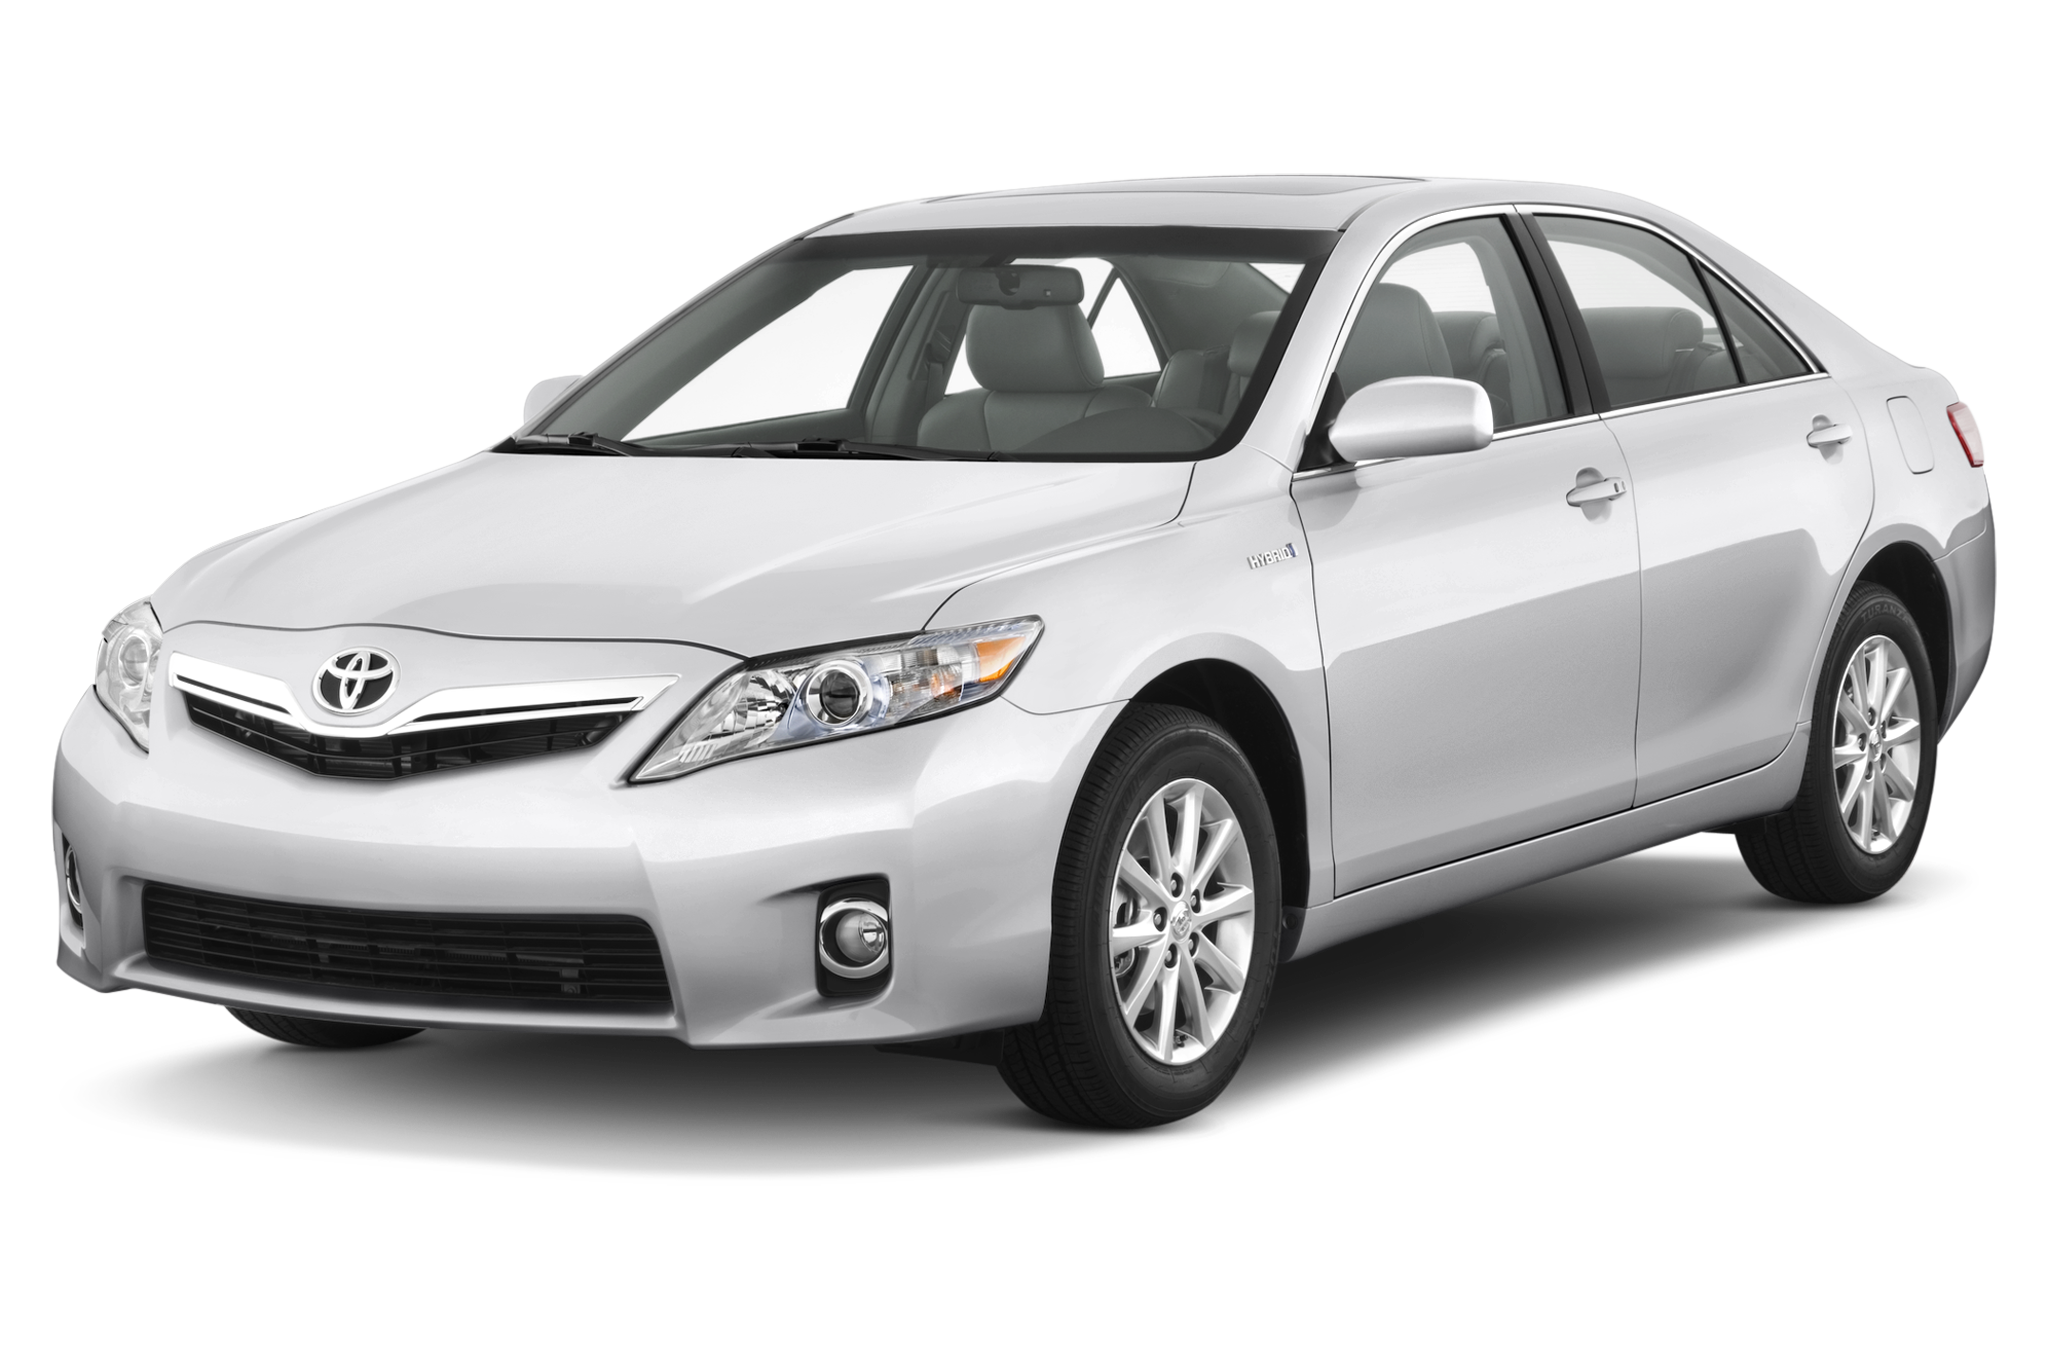 2010 toyota camry hybrid toyota hybrid sedan review automobile magazine. Black Bedroom Furniture Sets. Home Design Ideas